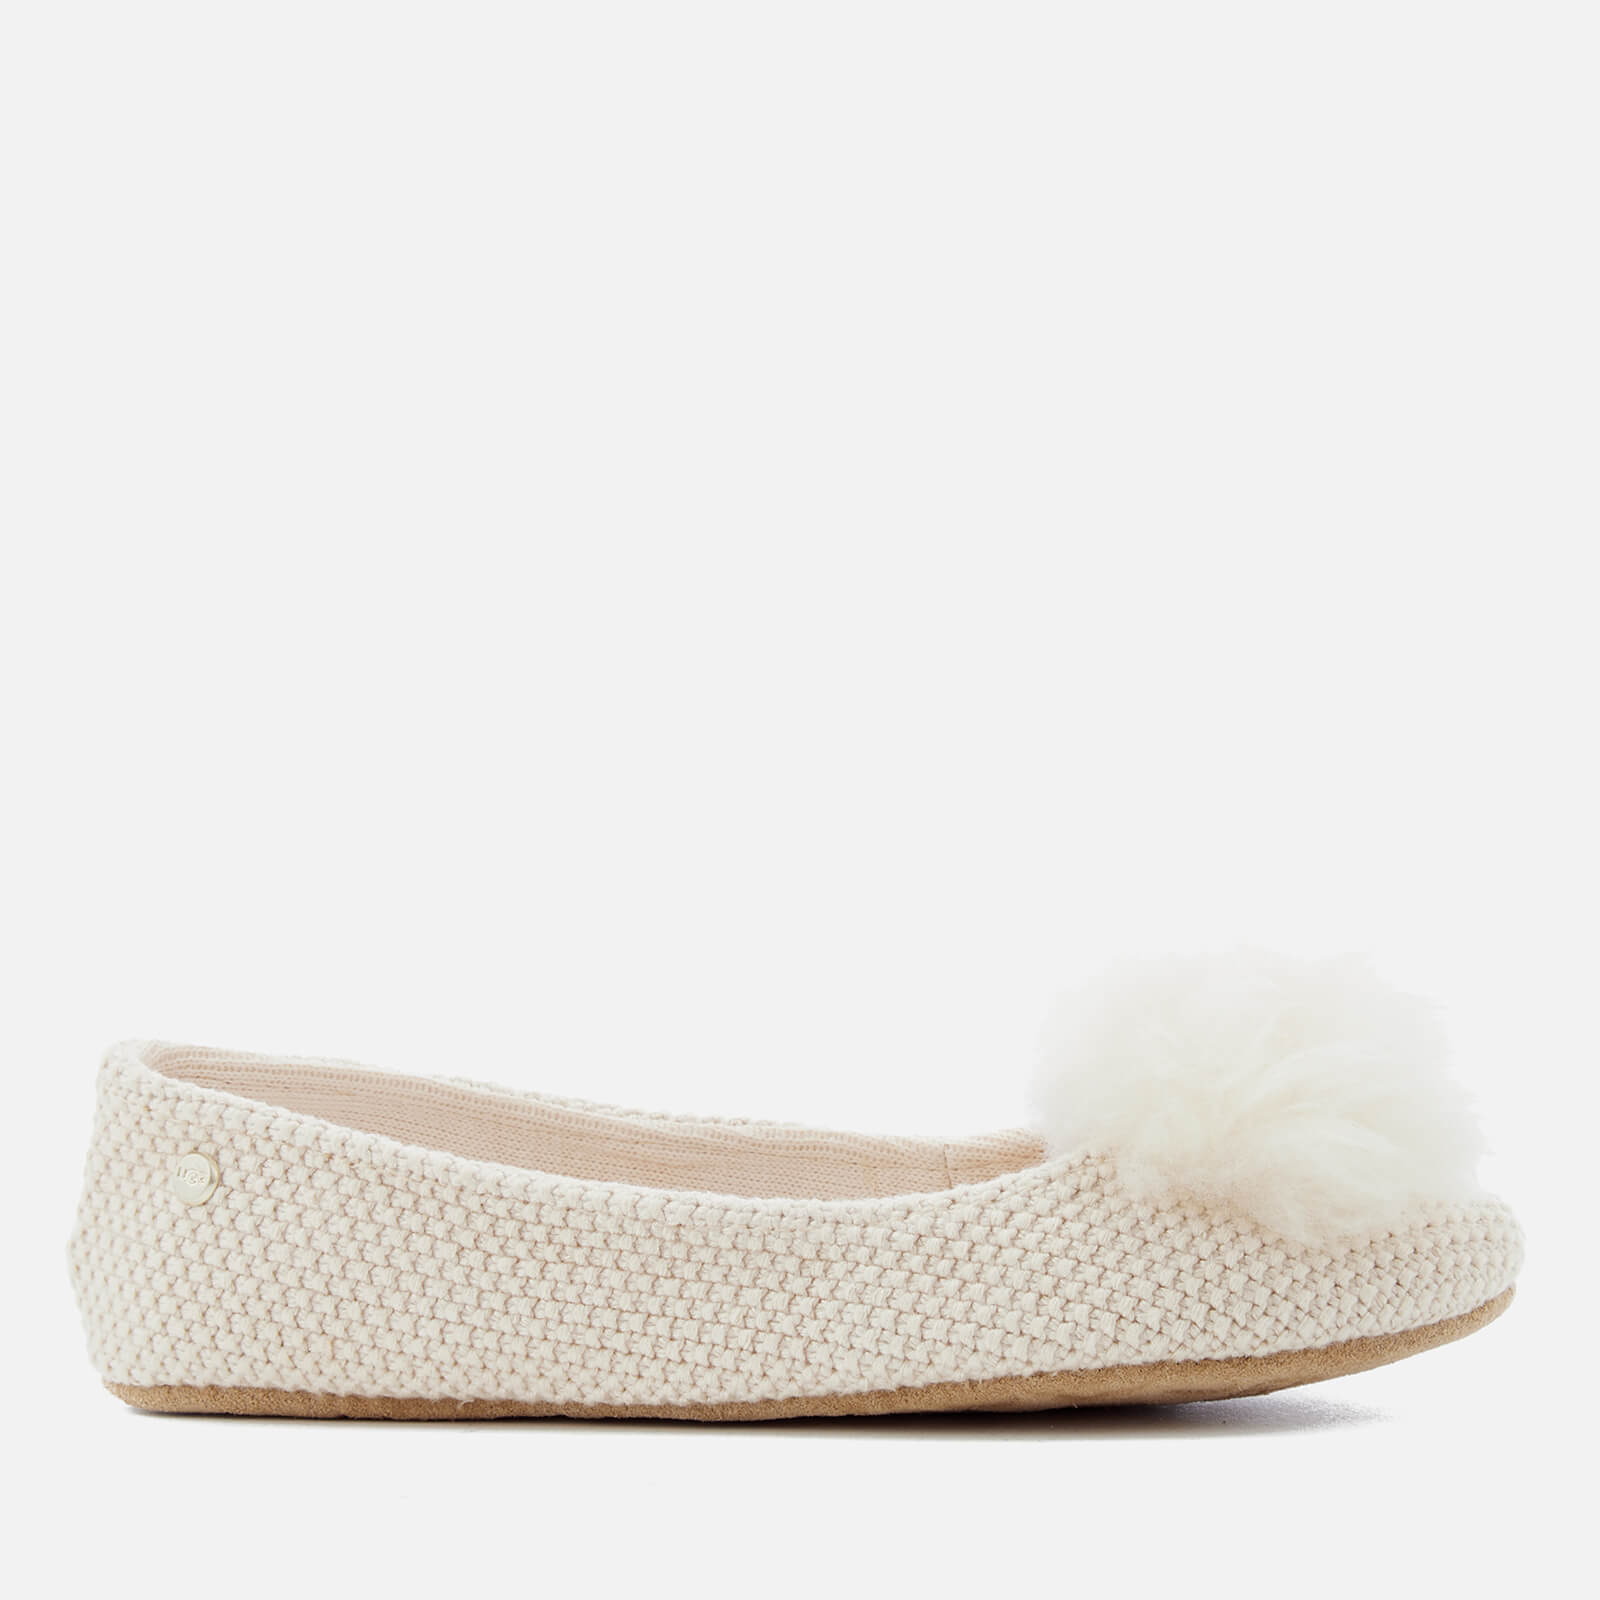 6fc4a8542e2 UGG Women s Andi Cotton Knitted Slippers - Cream Clothing